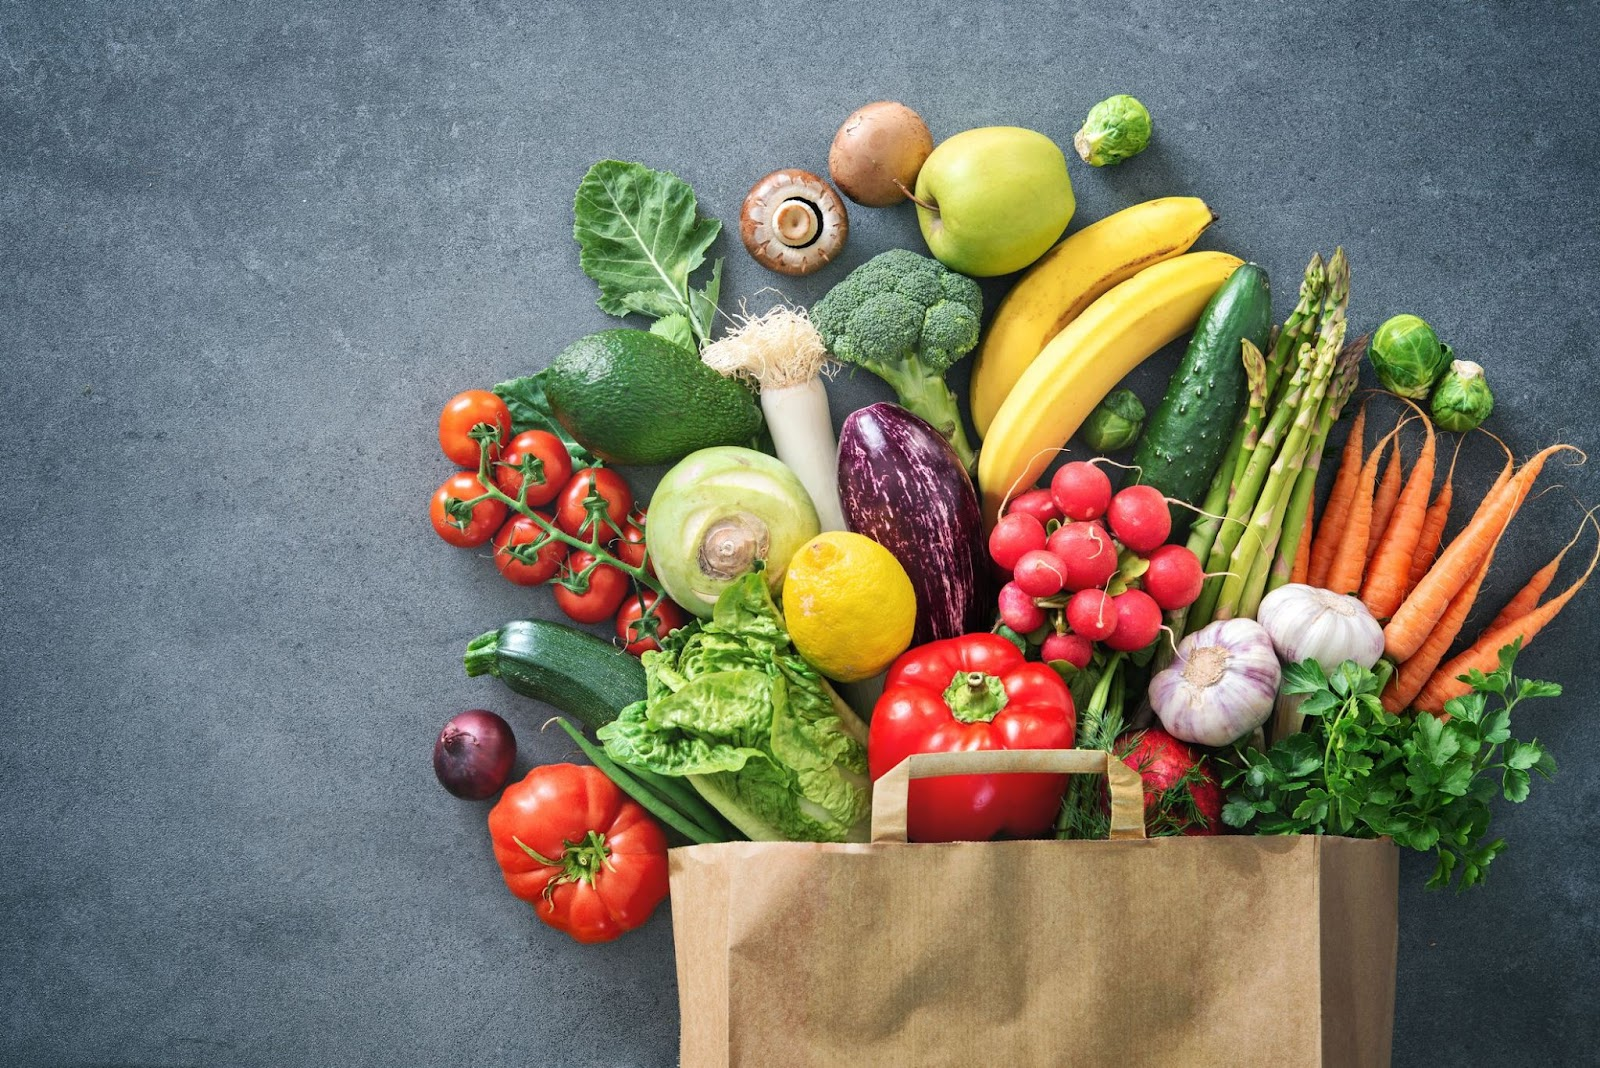 Make following changes in your daily diet to prevent from cancer